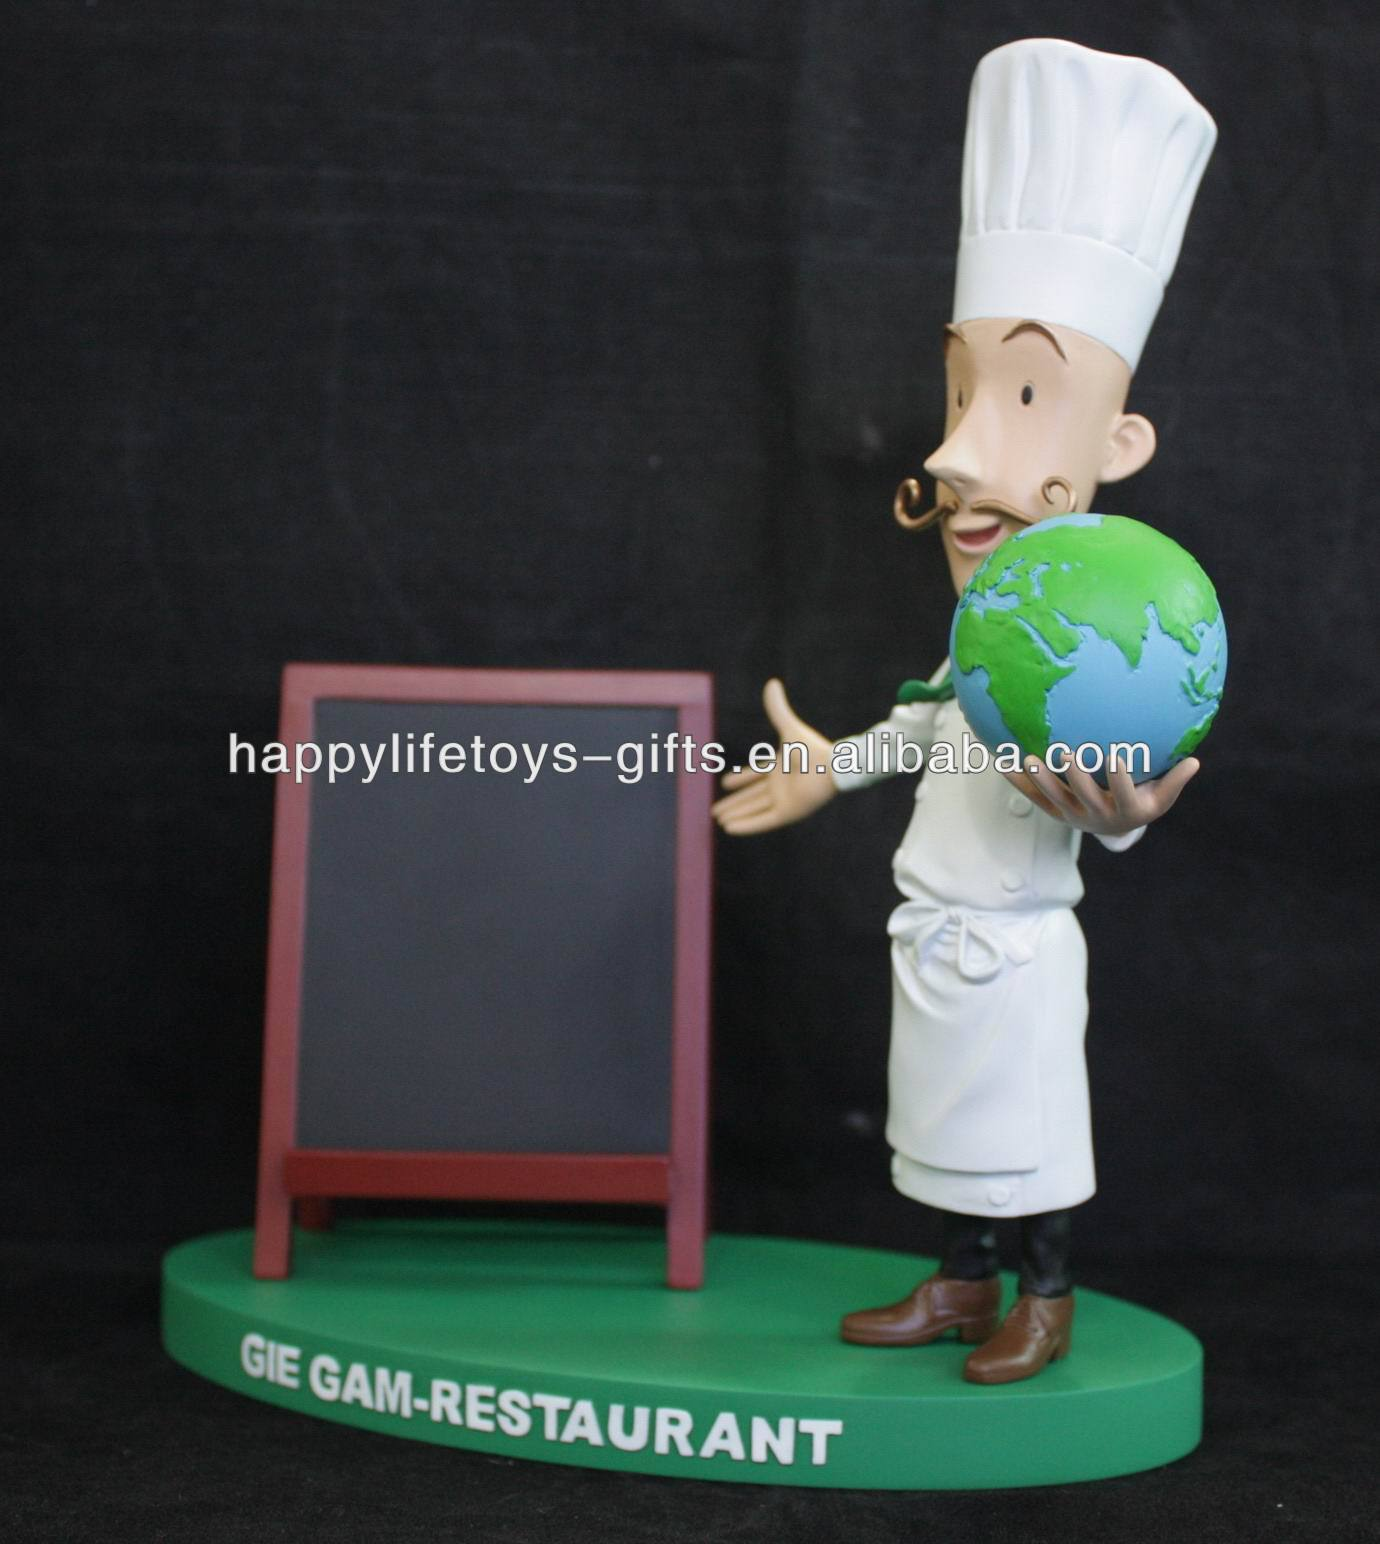 chef figurine chef figurine suppliers and manufacturers at